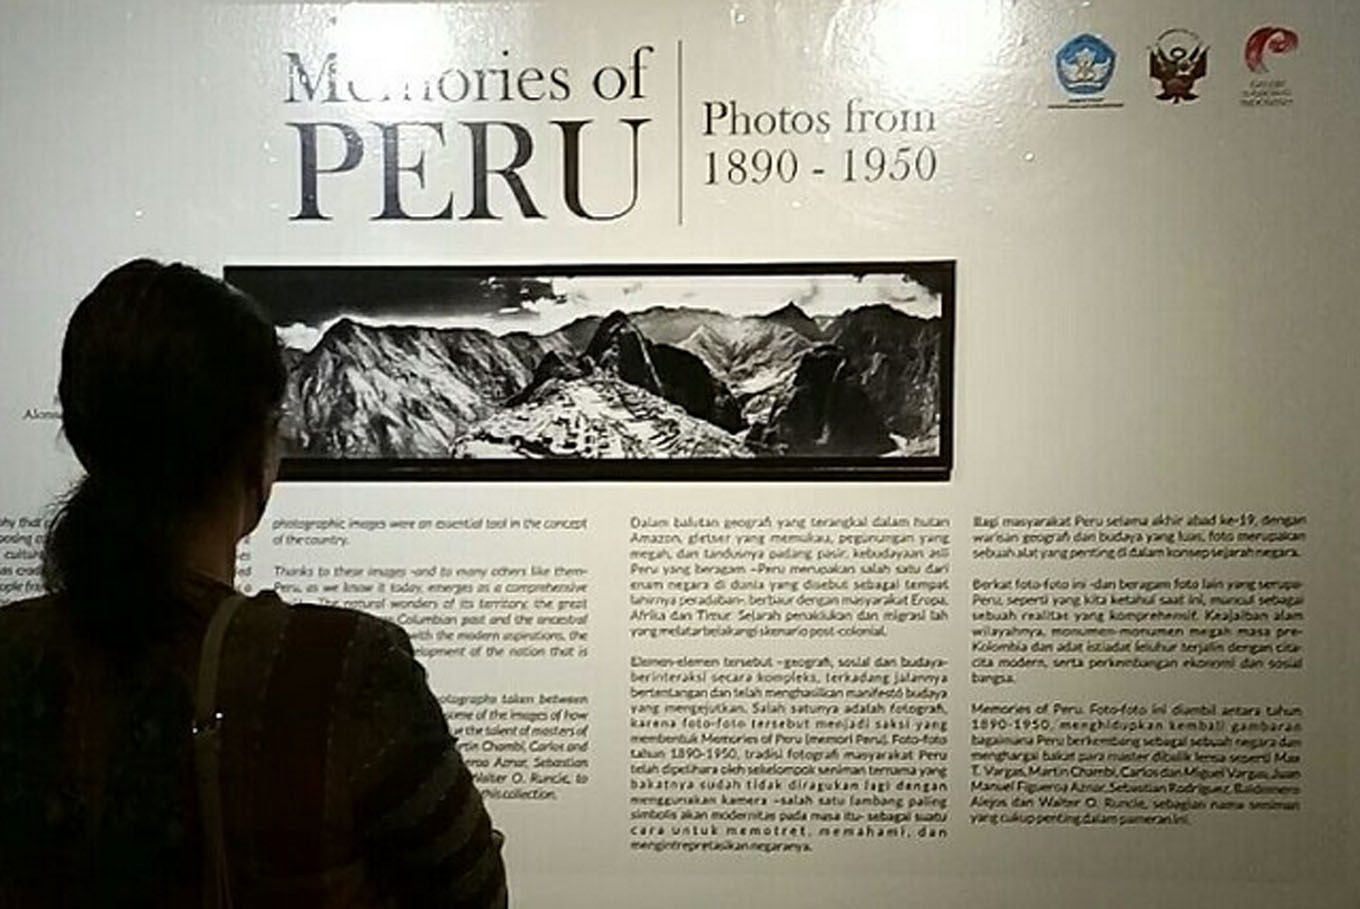 National Gallery photo exhibition spotlights Peru's history